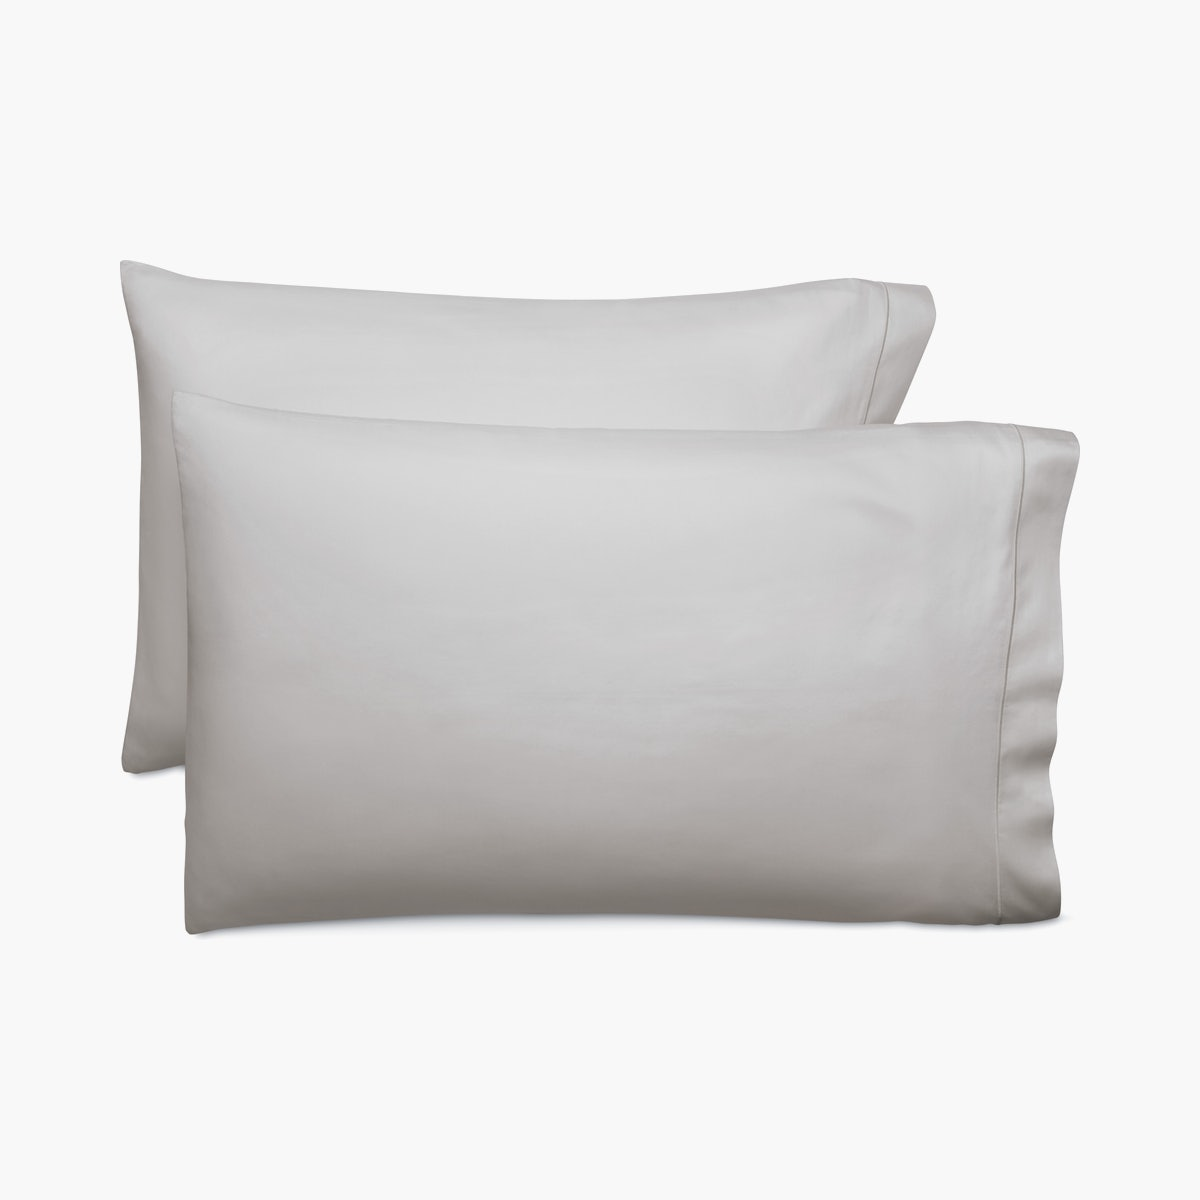 DWR Pillowcase Pair - Sateen